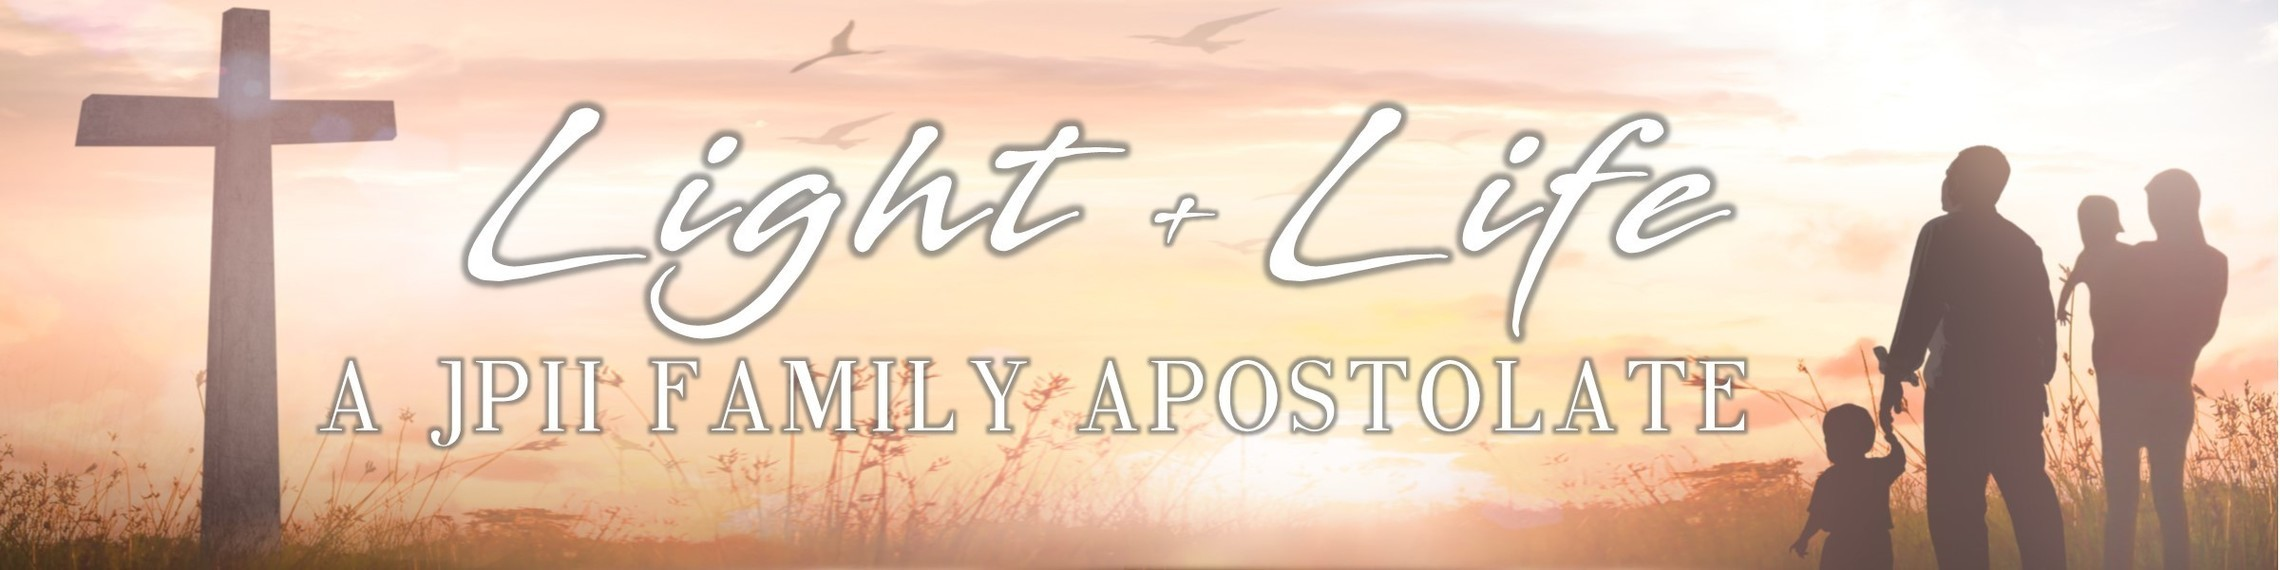 Light Life Apostolate